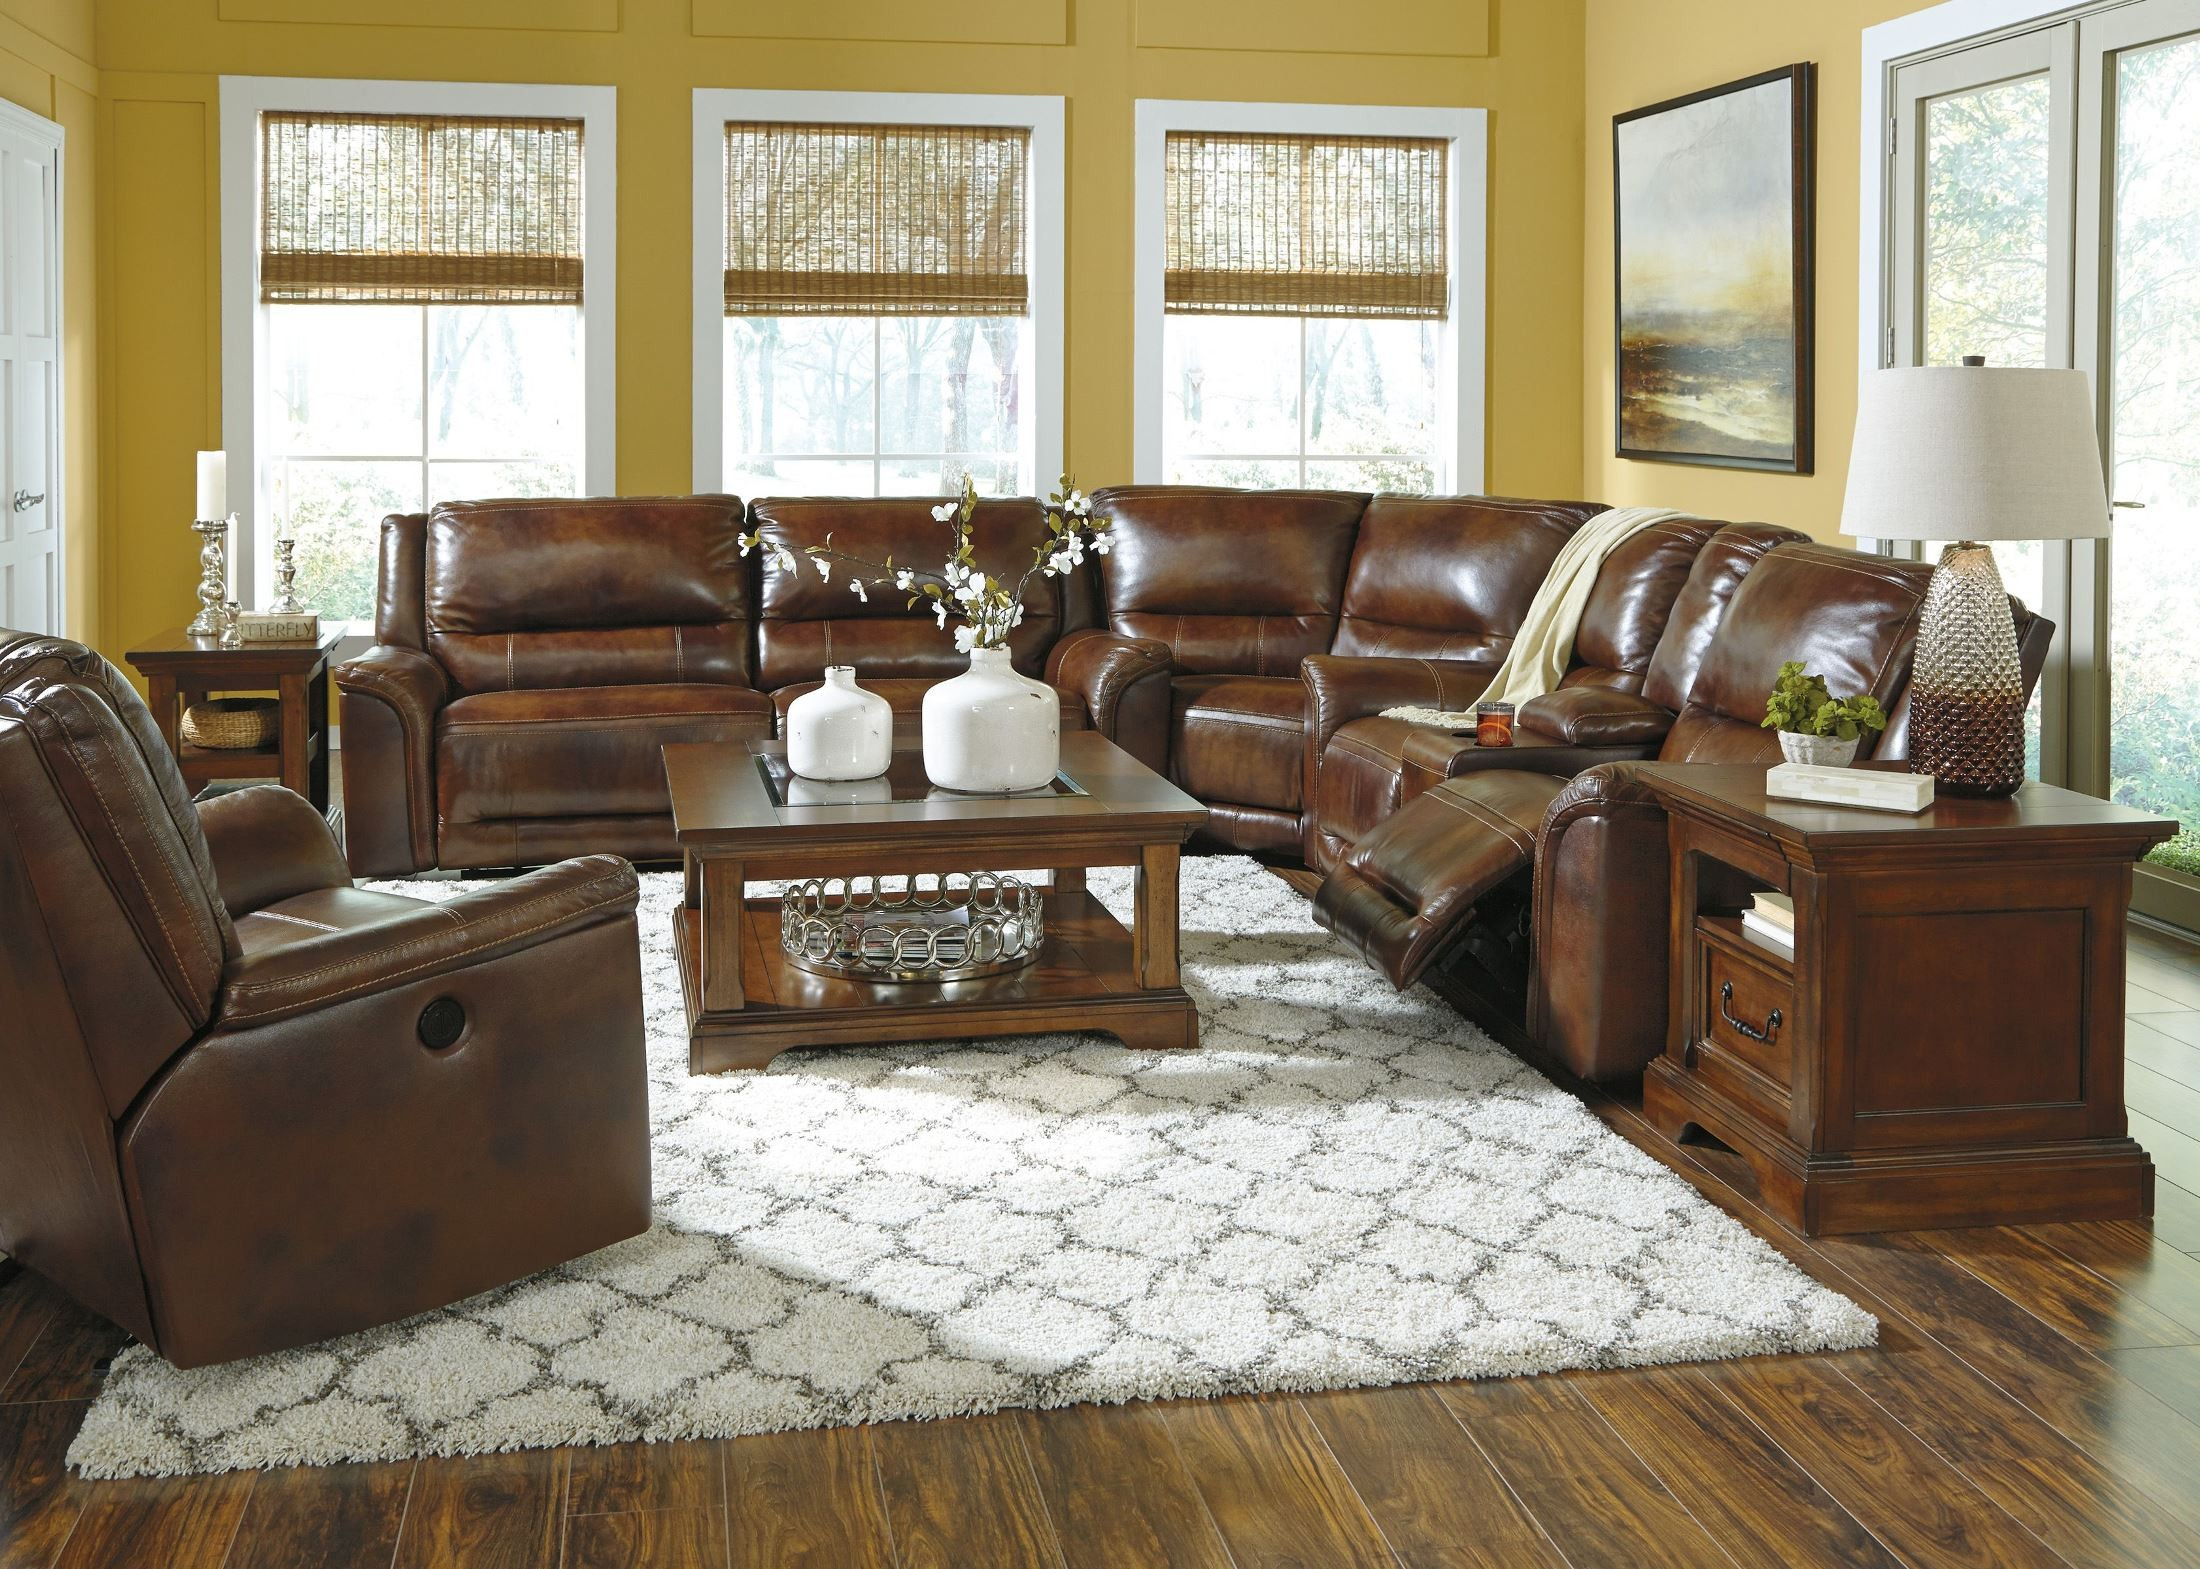 Sofa Set Offer Up Jayron Harness Reclining Sectional From Ashley U76600 81